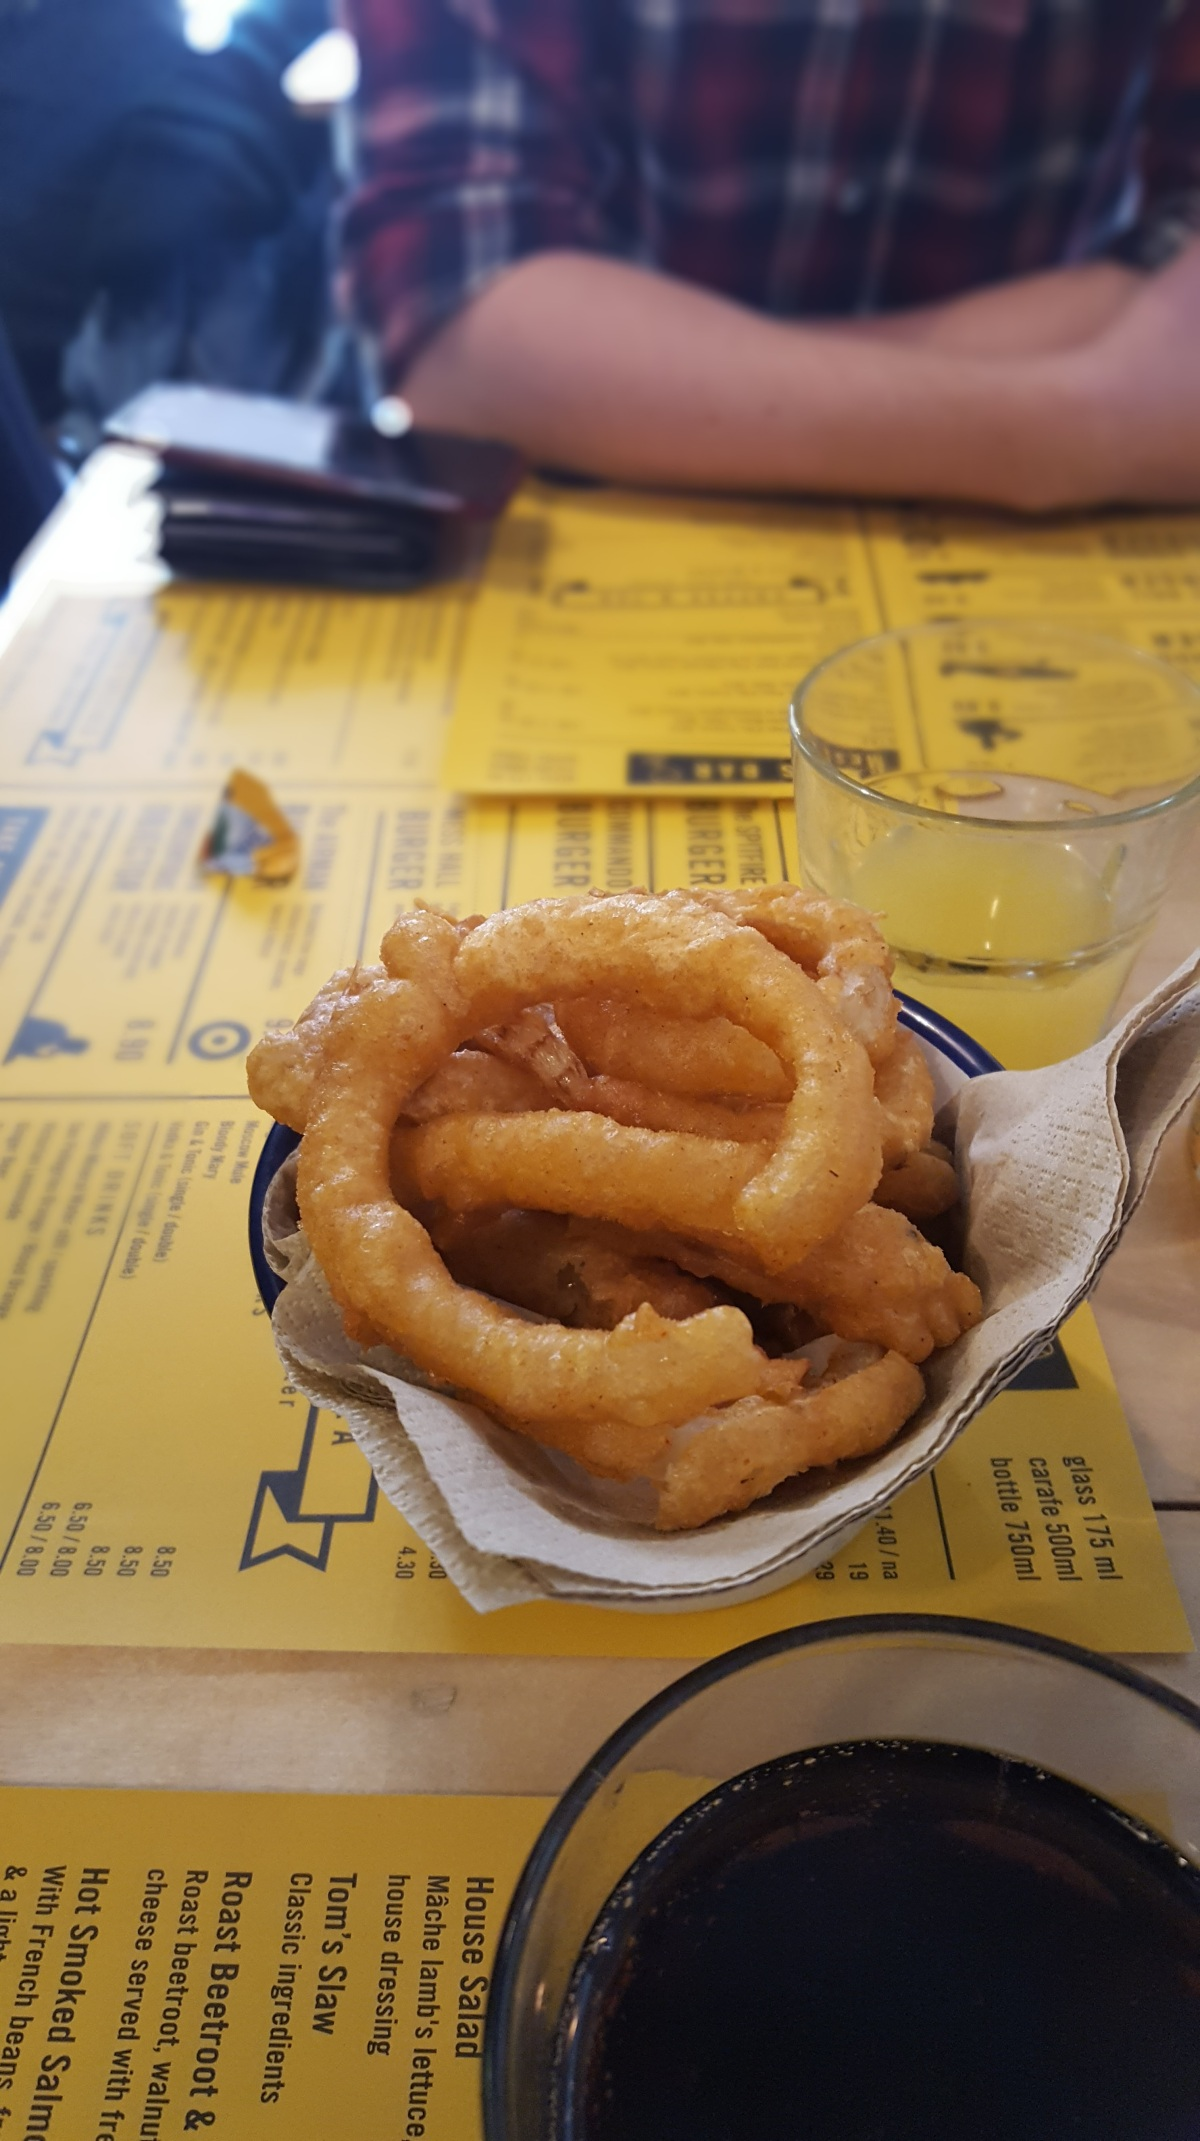 Tom Tom Mess Hall onion rings